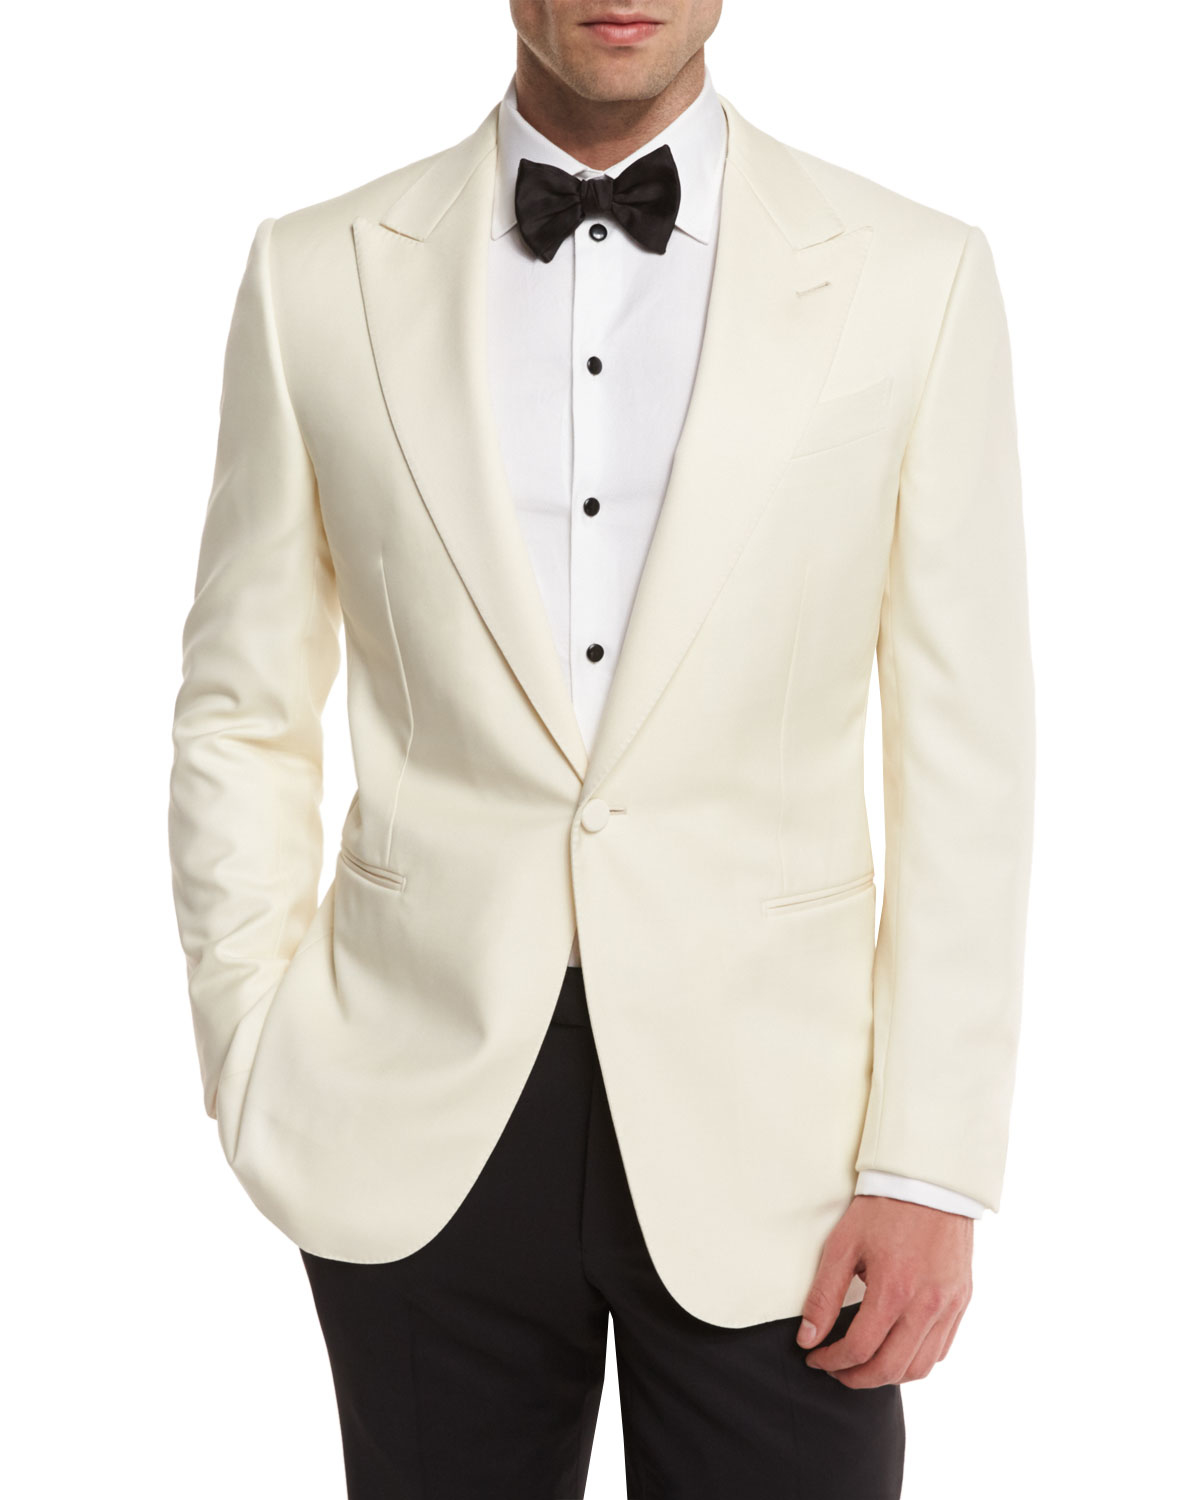 I needed a white dinner jacket for a special cruise. Locally, prices were too expensive ($ to $) for this one-time use. This jacket easily compares to the $+ jacket I tried on at a major high-end retailer.